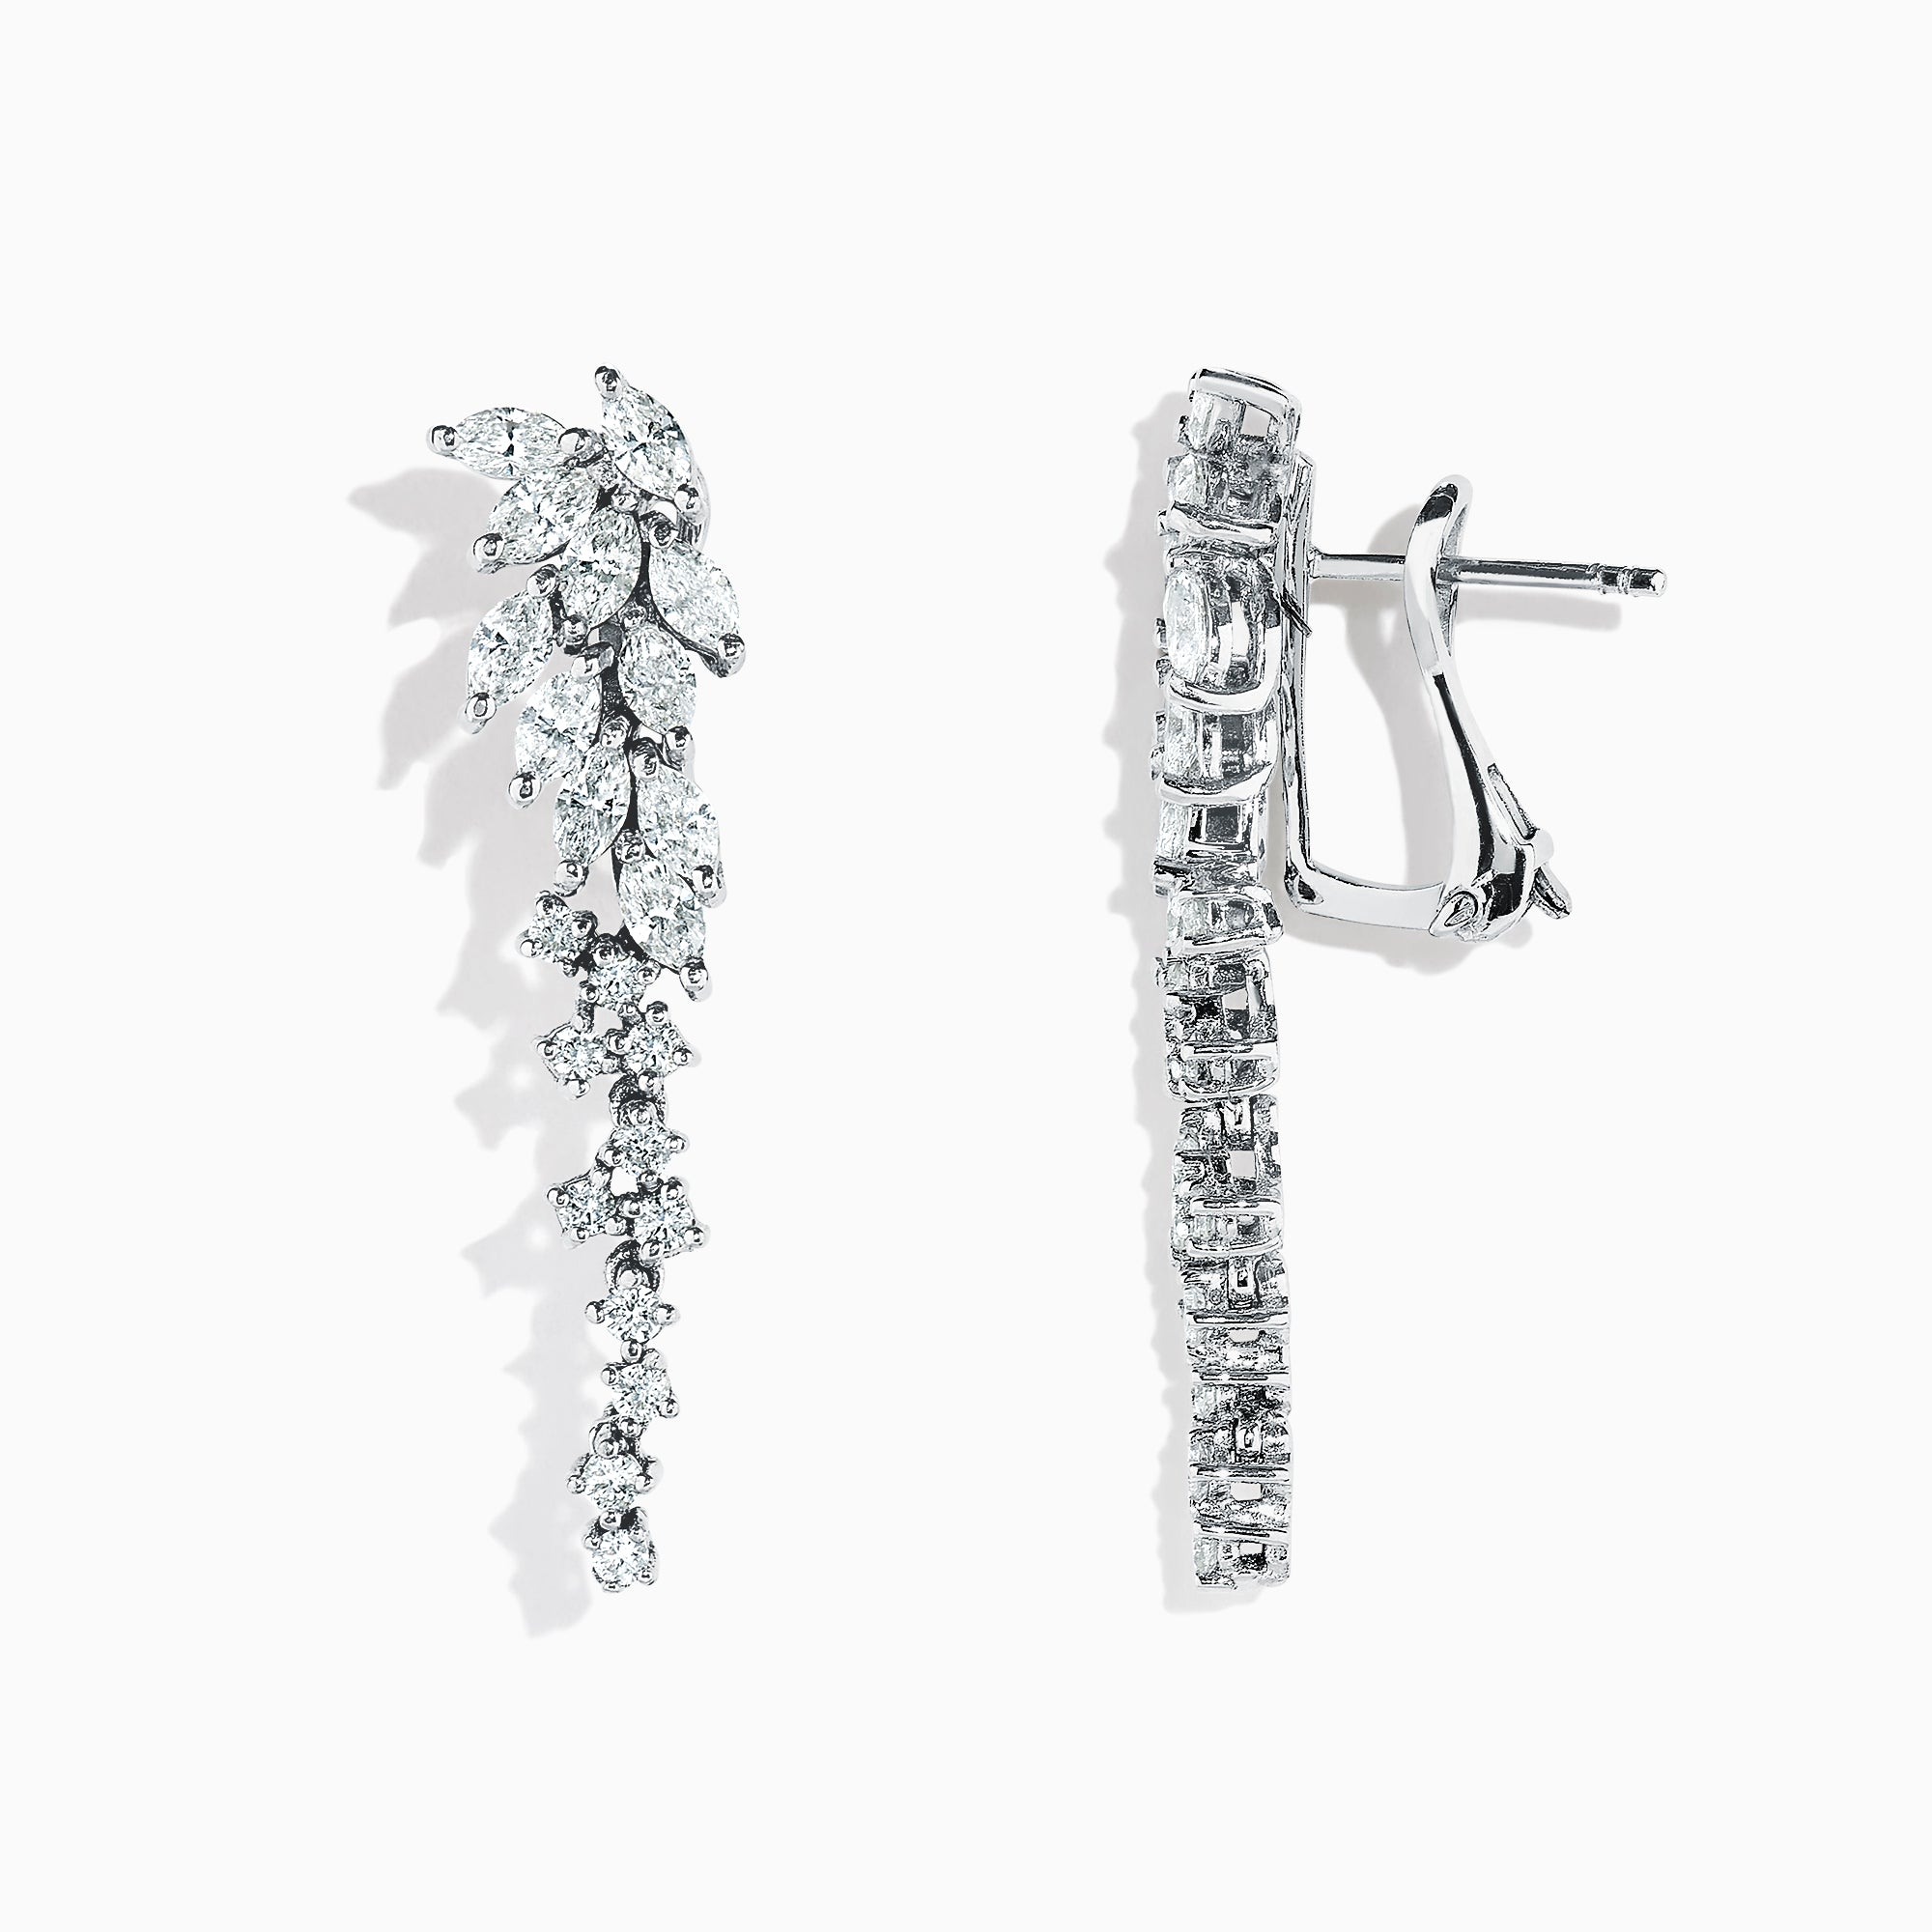 Effy Pave Classica 14K White Gold Cascading Diamond Earrings, 2.01 TCW